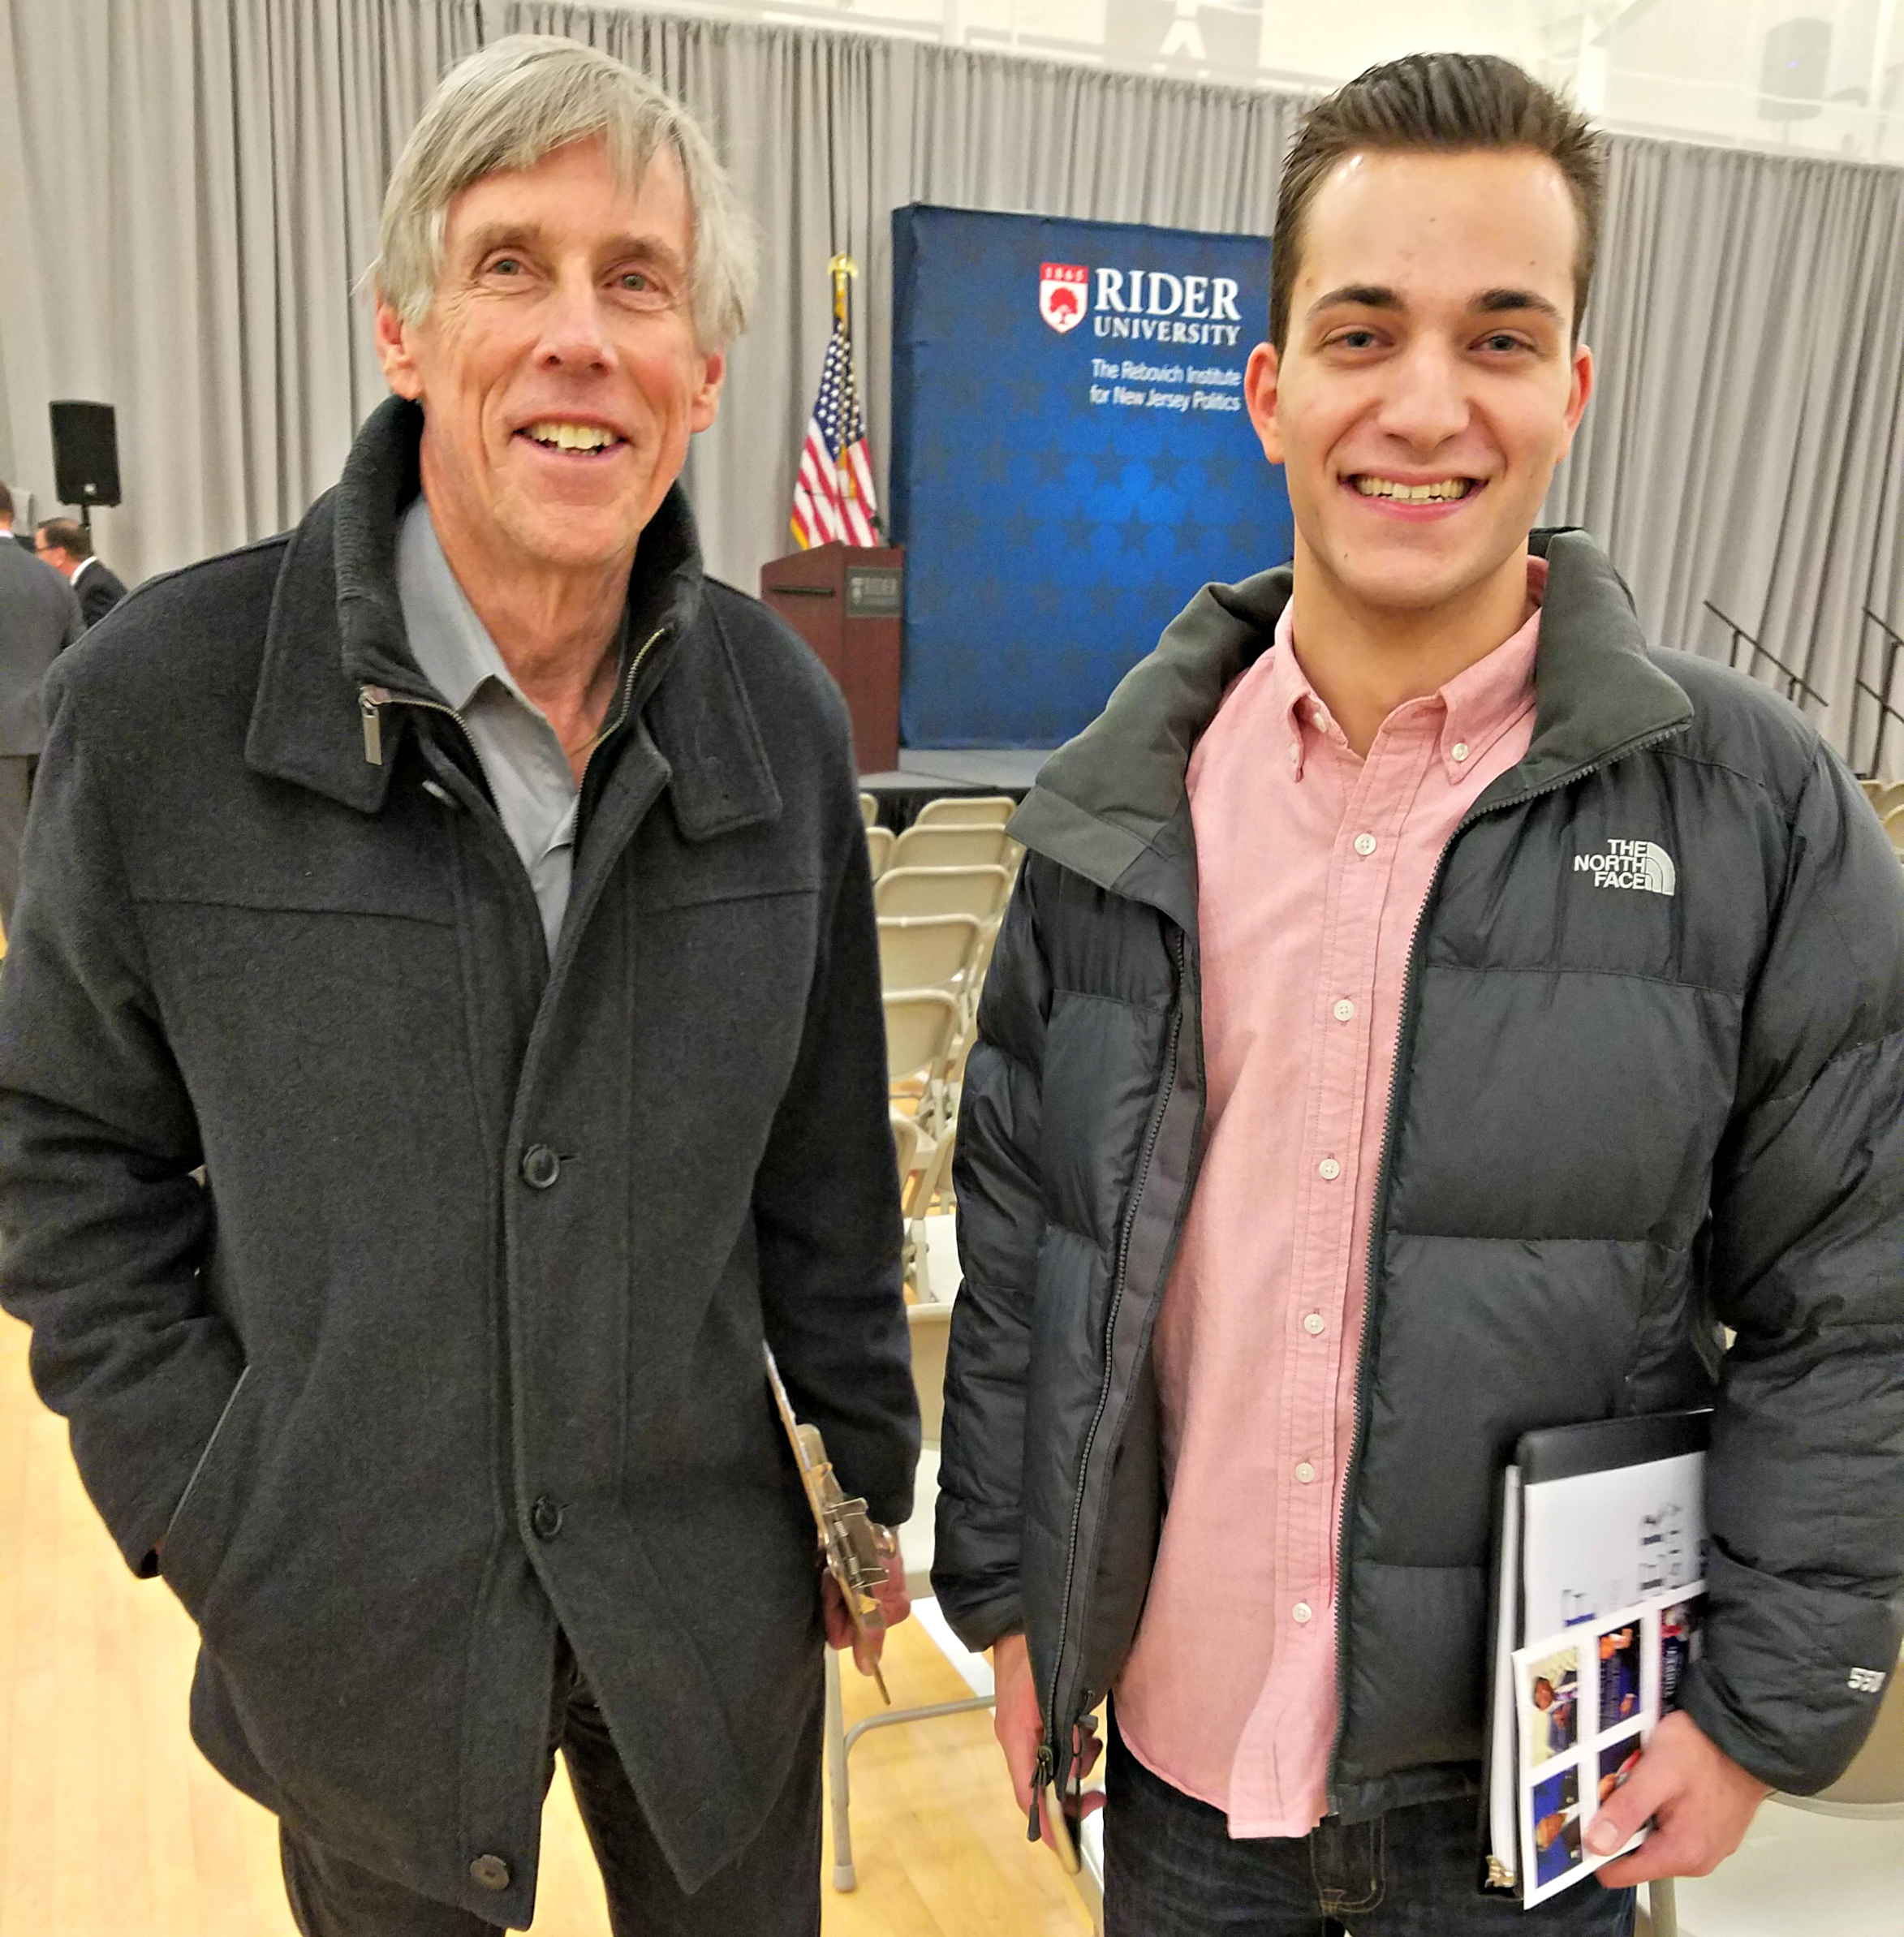 Tom Simonet, a professor of journalism at Rider University, after the Gingrich speech with journalism major Brandon Scalea from Marlboro, New Jersey. (Photo: Kevin Mooney/The Daily Signal)